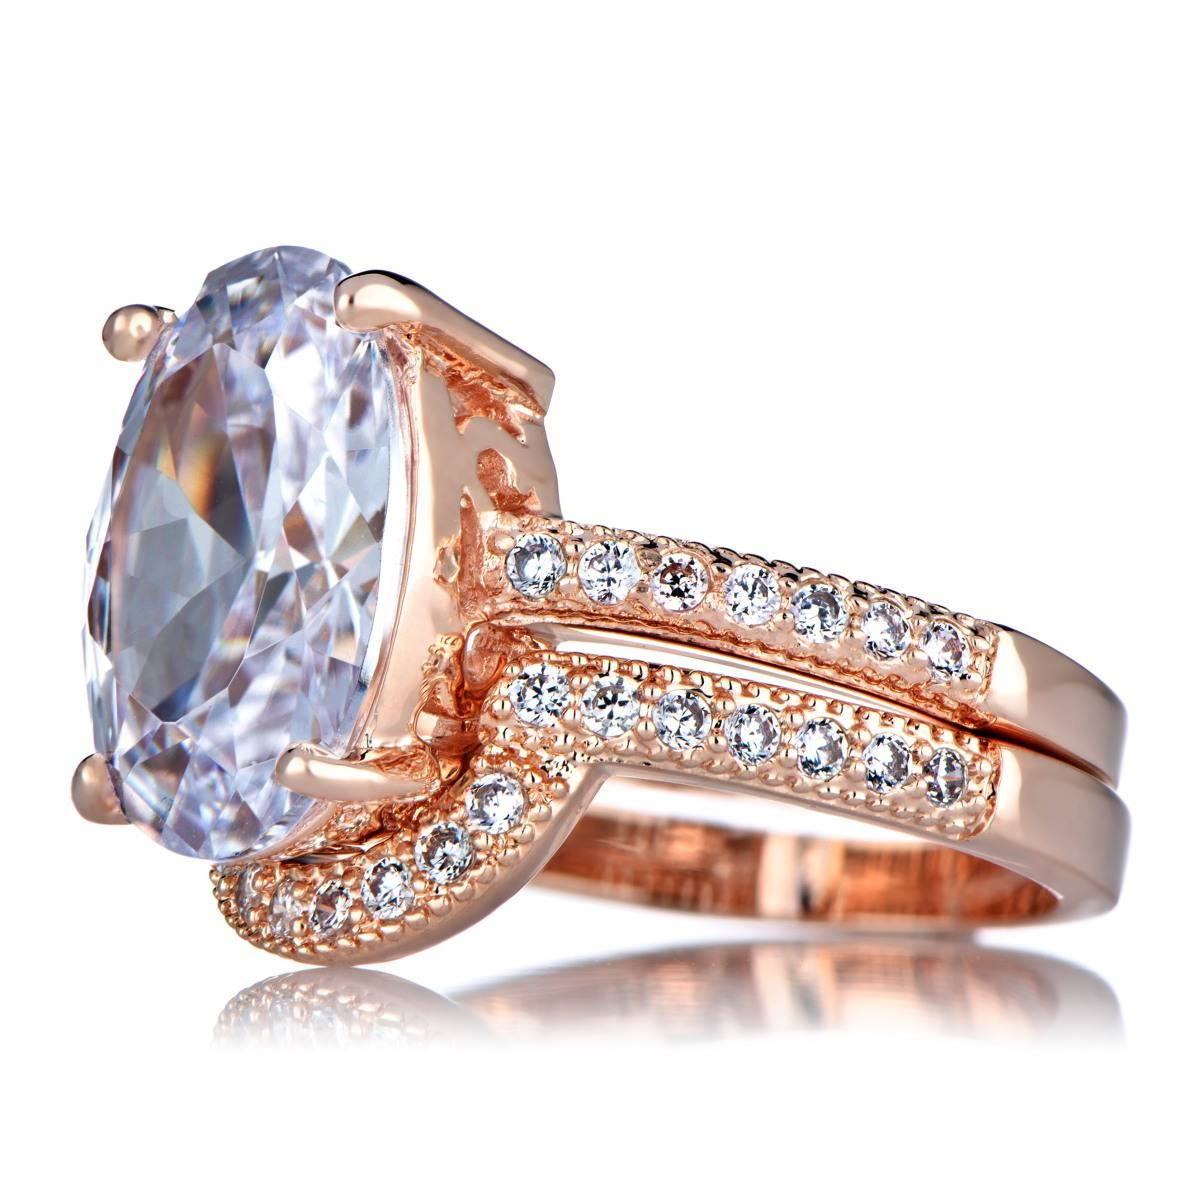 Oval Cut 5 Carat Rose Goldtone Cz Wedding Ring Set In Rose Gold Wedding Bands Sets (View 6 of 15)